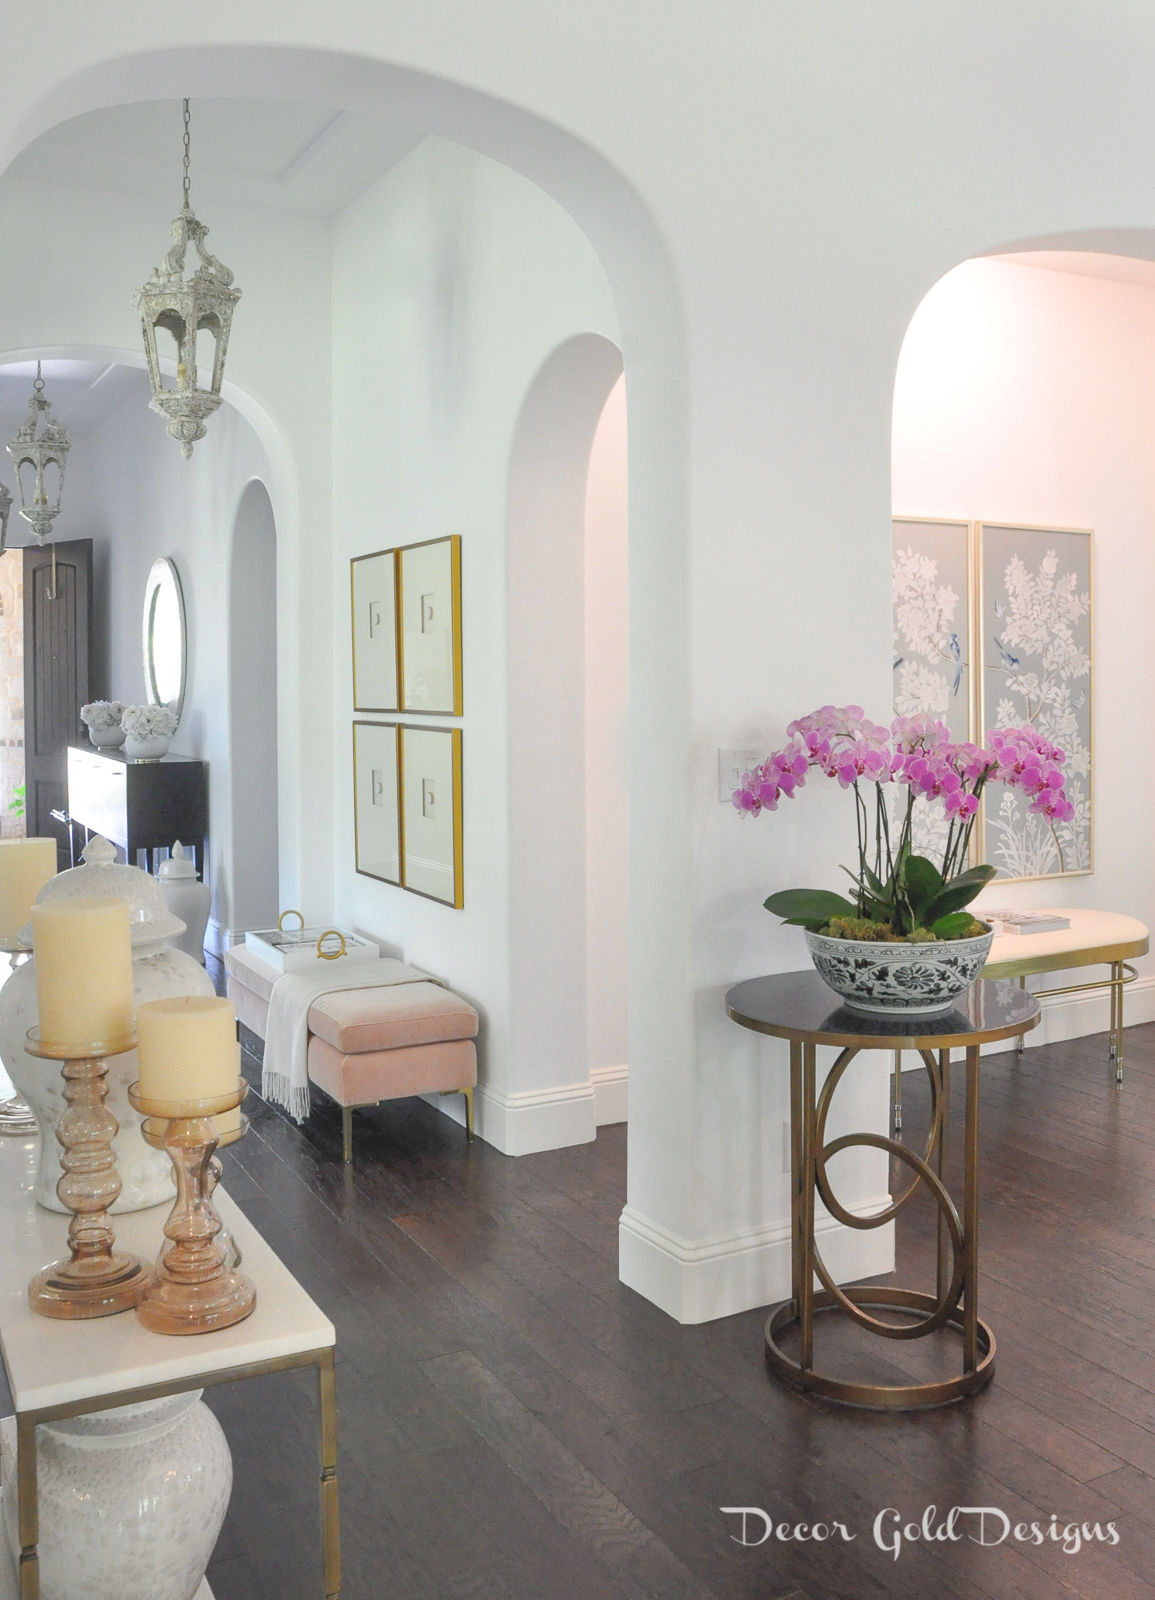 Summer home tour entryway decorated orchids candles